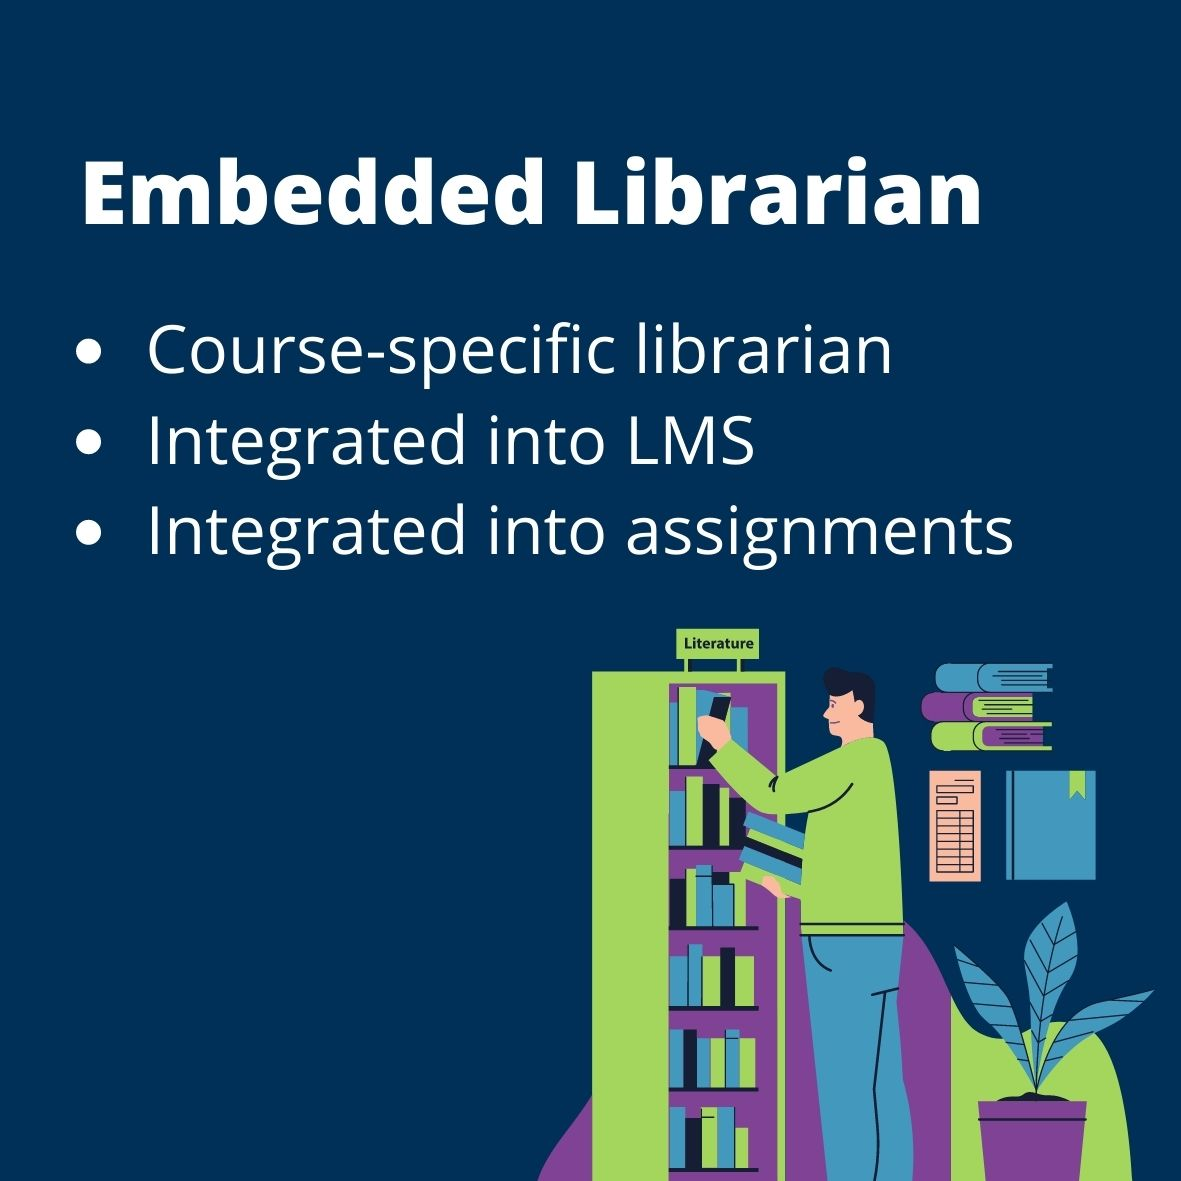 embedded librarian definition